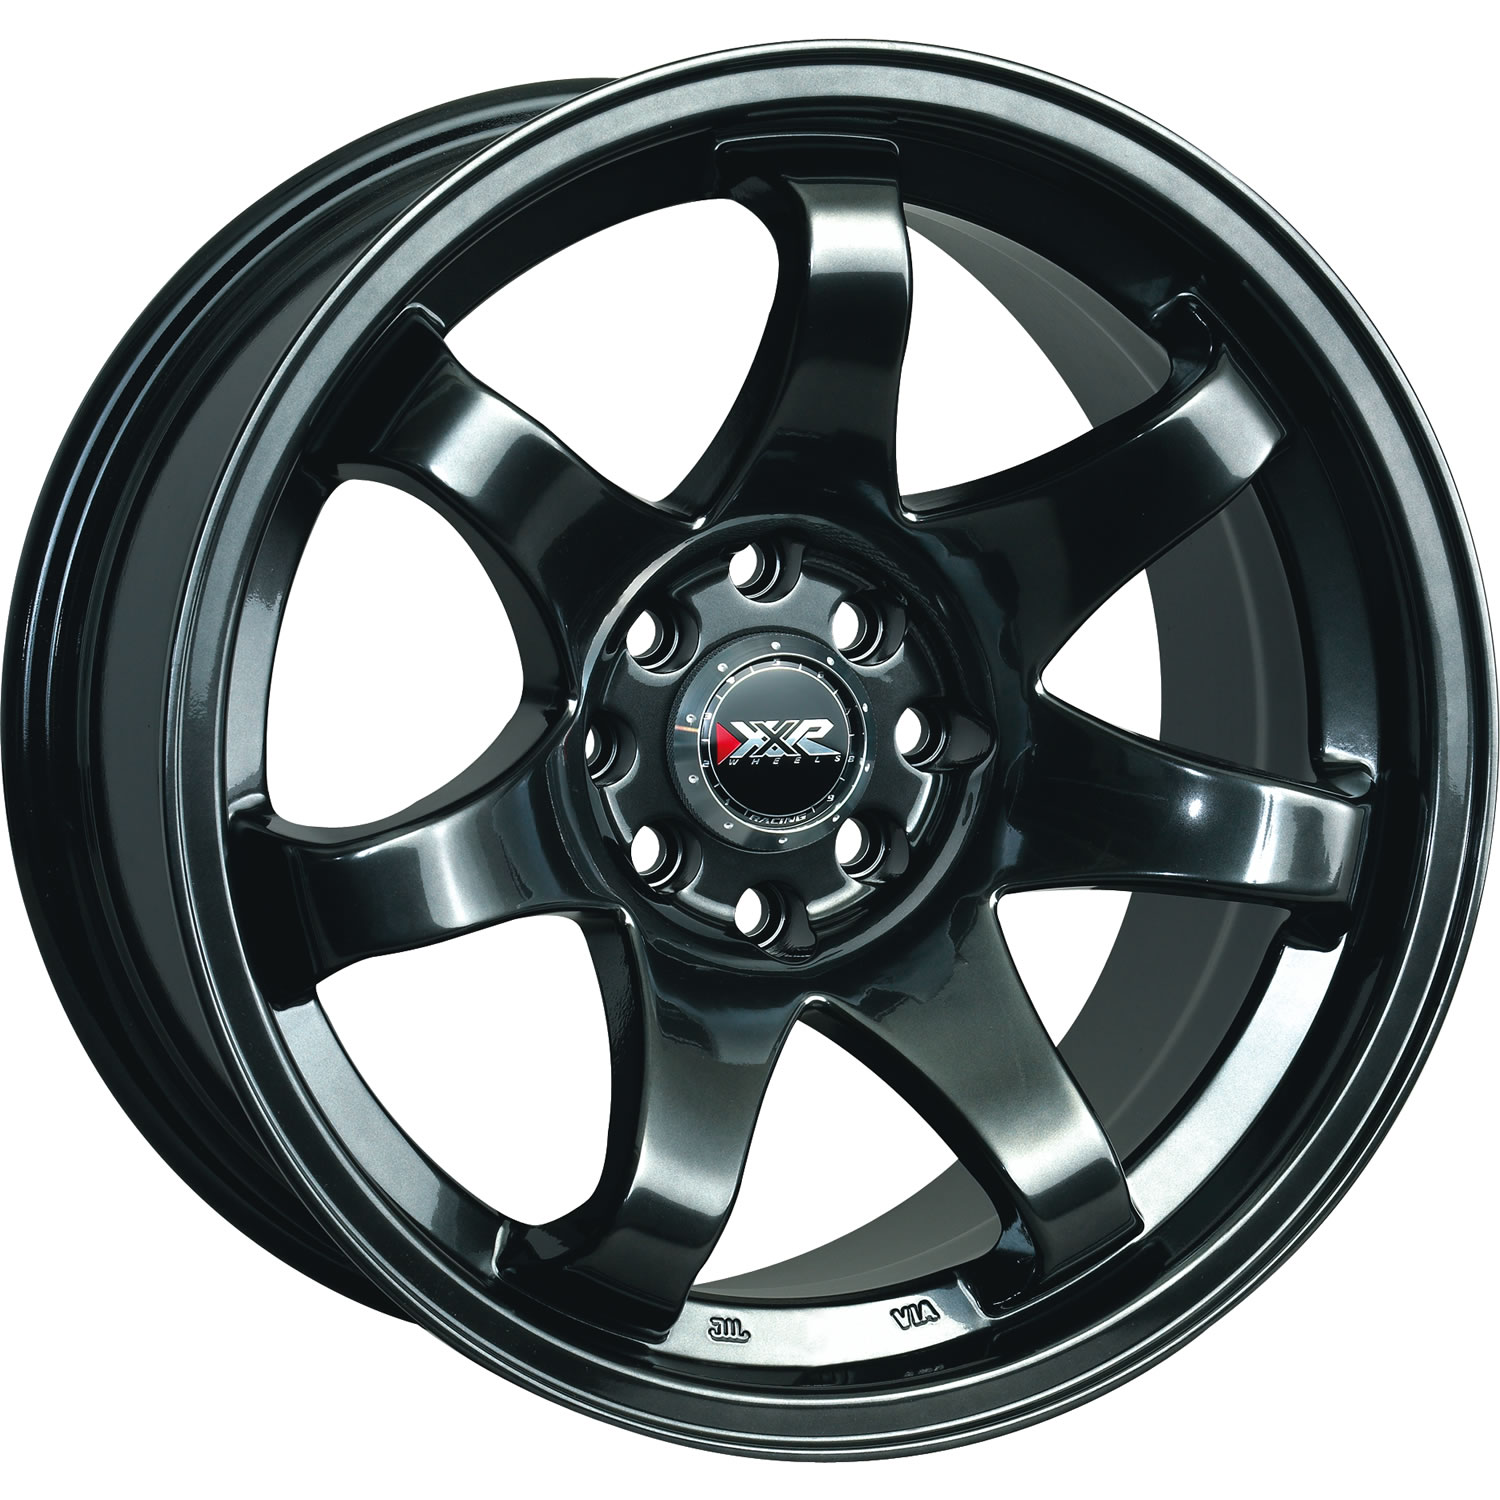 Wheelfire Aftermarket Wheels And Rims   Autos Post